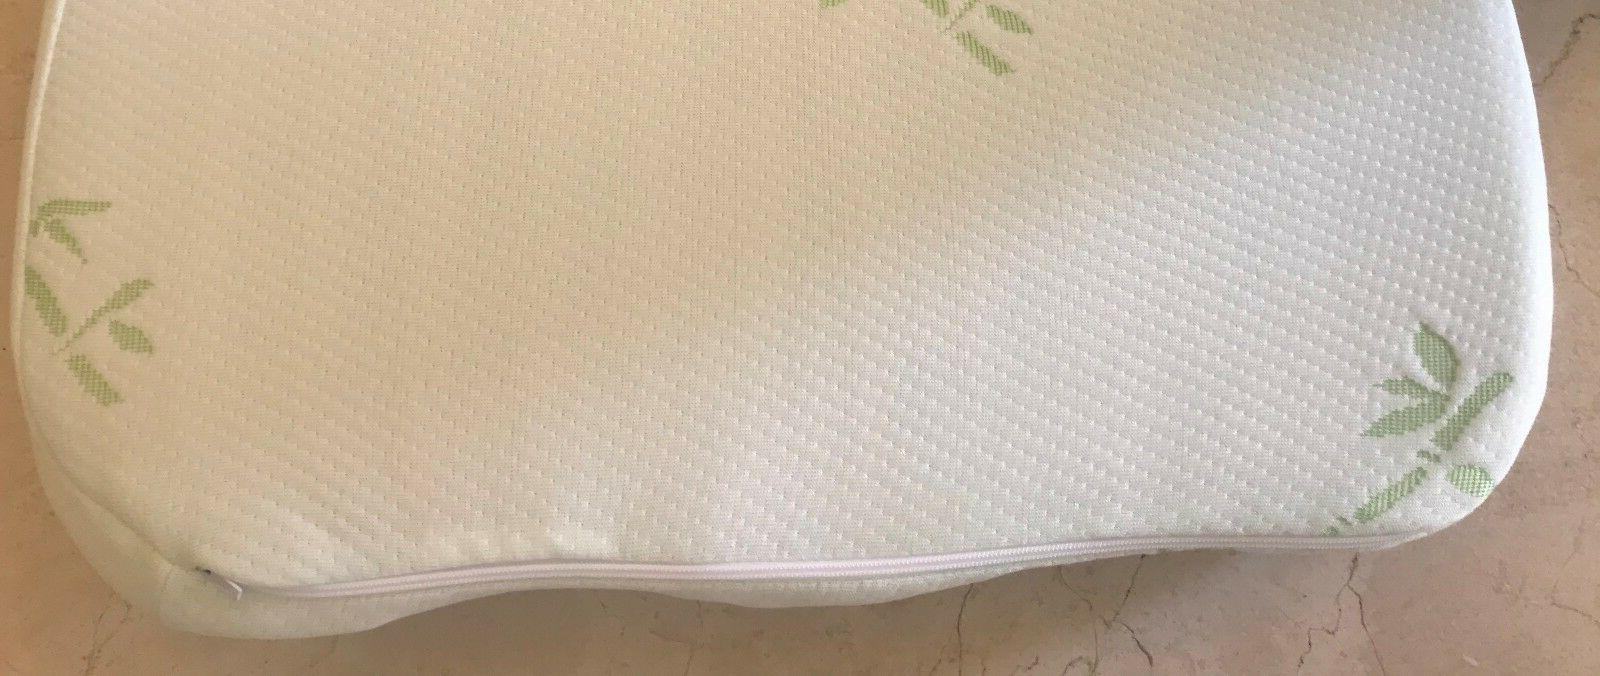 Extra Thick Orthopedic Memory Seat Cushion for ,Tailbone Pain